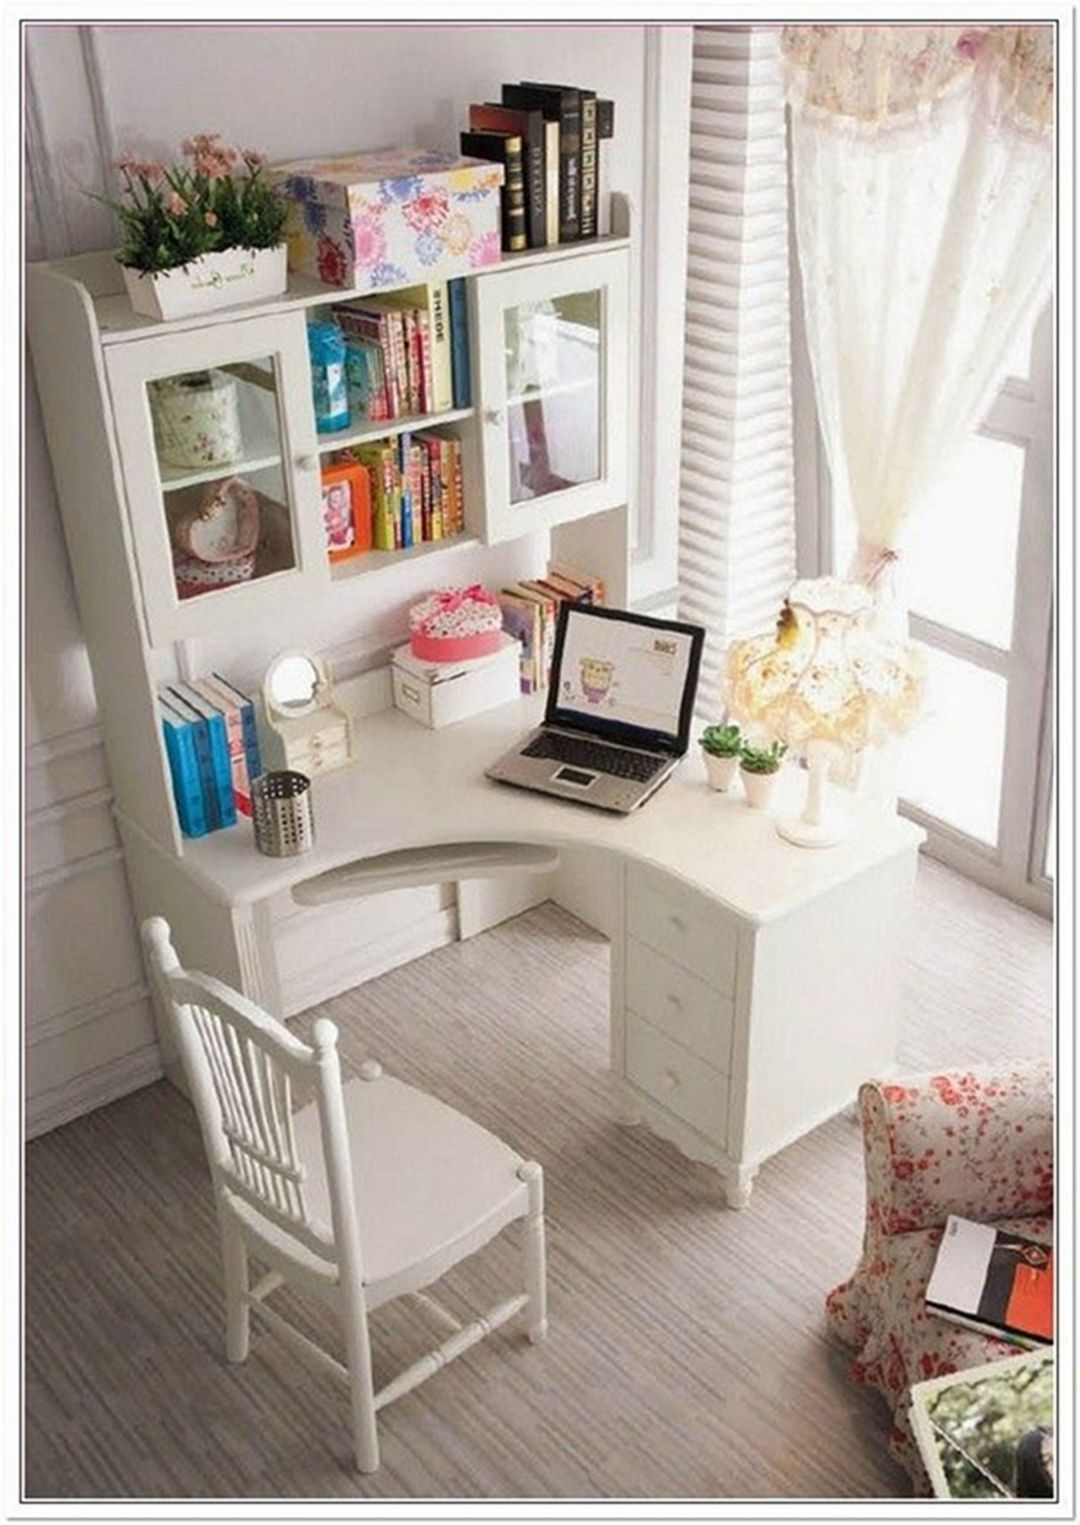 15 Fantastic Small Bedroom Desk Designs For Small Bedroom Ideas In 2020 With Images Small Bedroom Desk Desks For Small Spaces Small Corner Desk